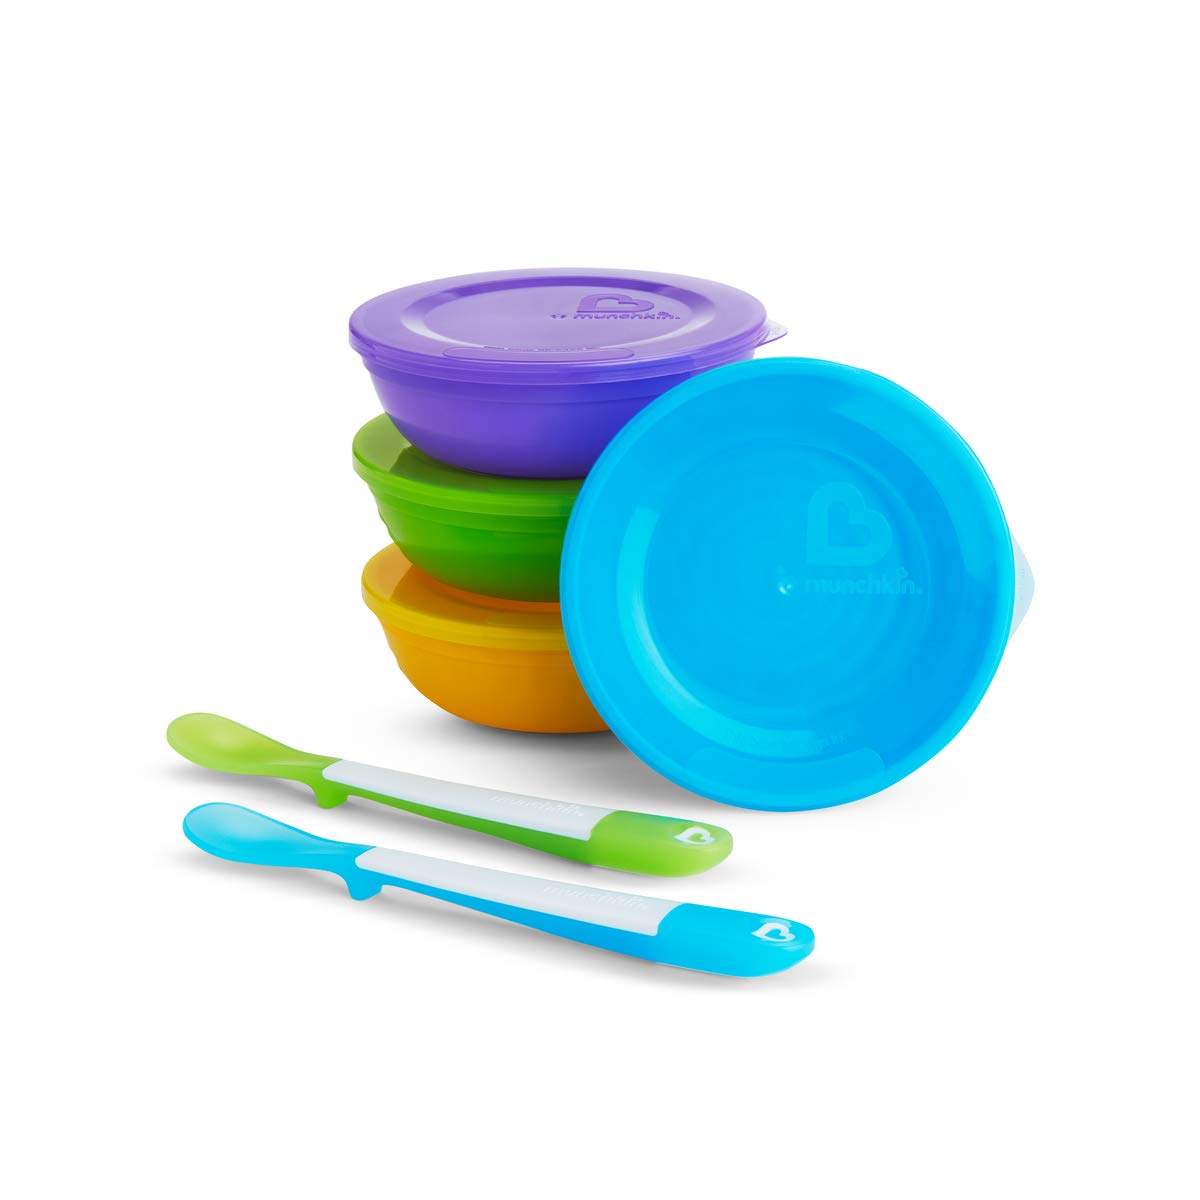 Munchkin Love - a - Bowls - Food Storage Container 4 bowls / Lid + 2 Spoons, multicolour